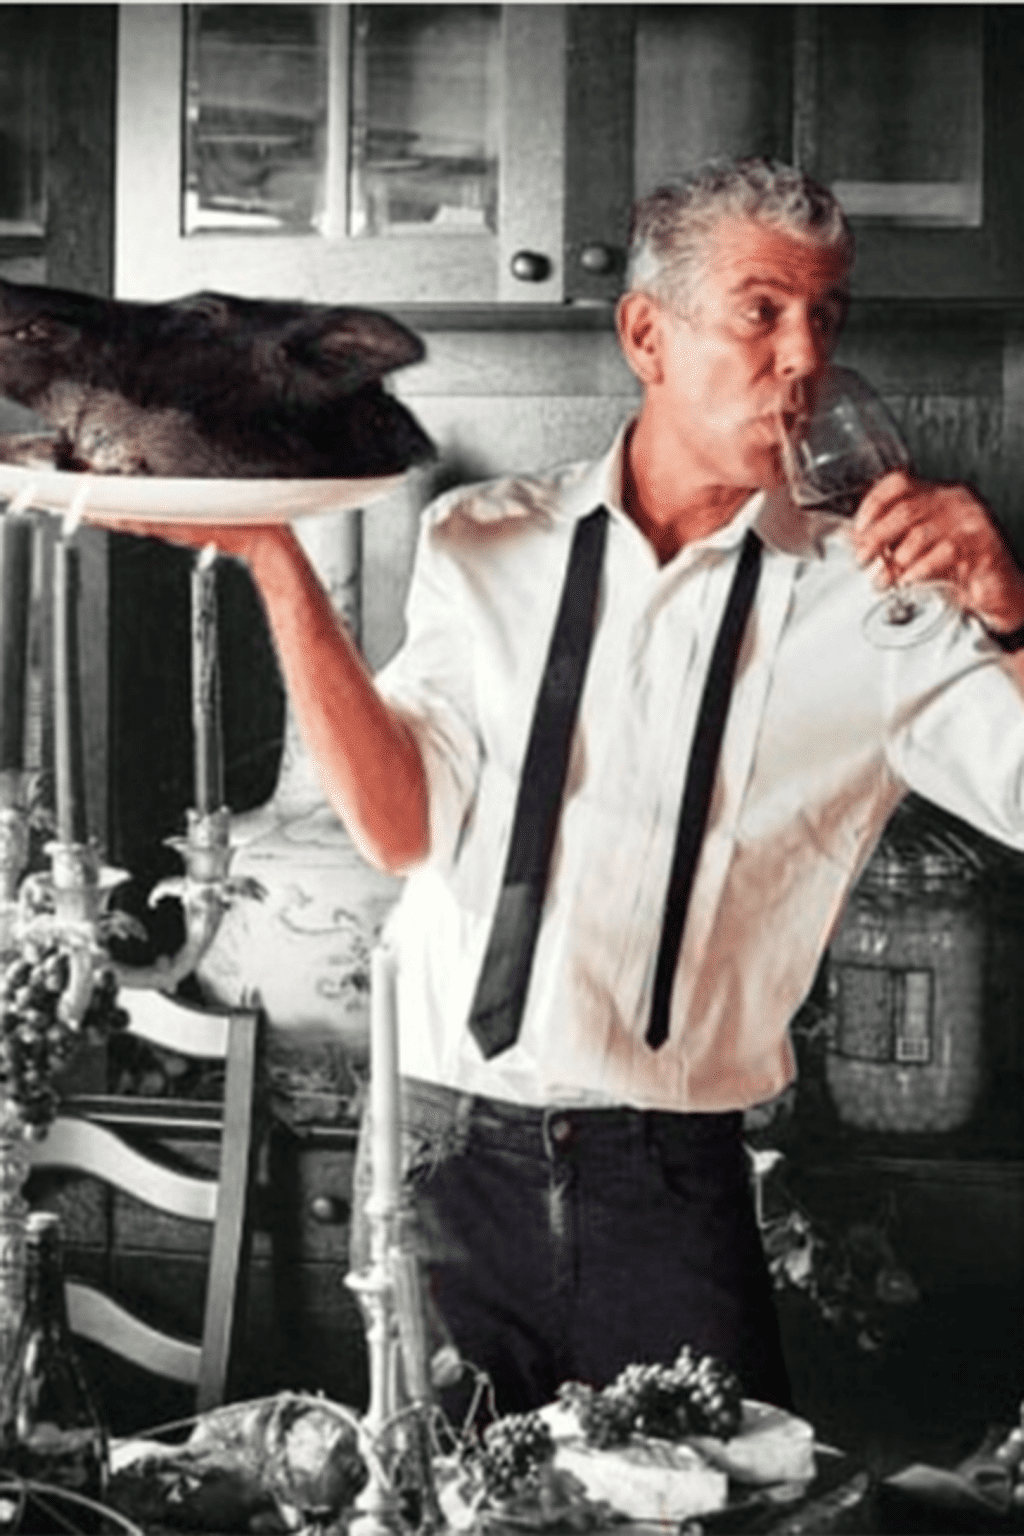 anthony bourdain kitchen confidential